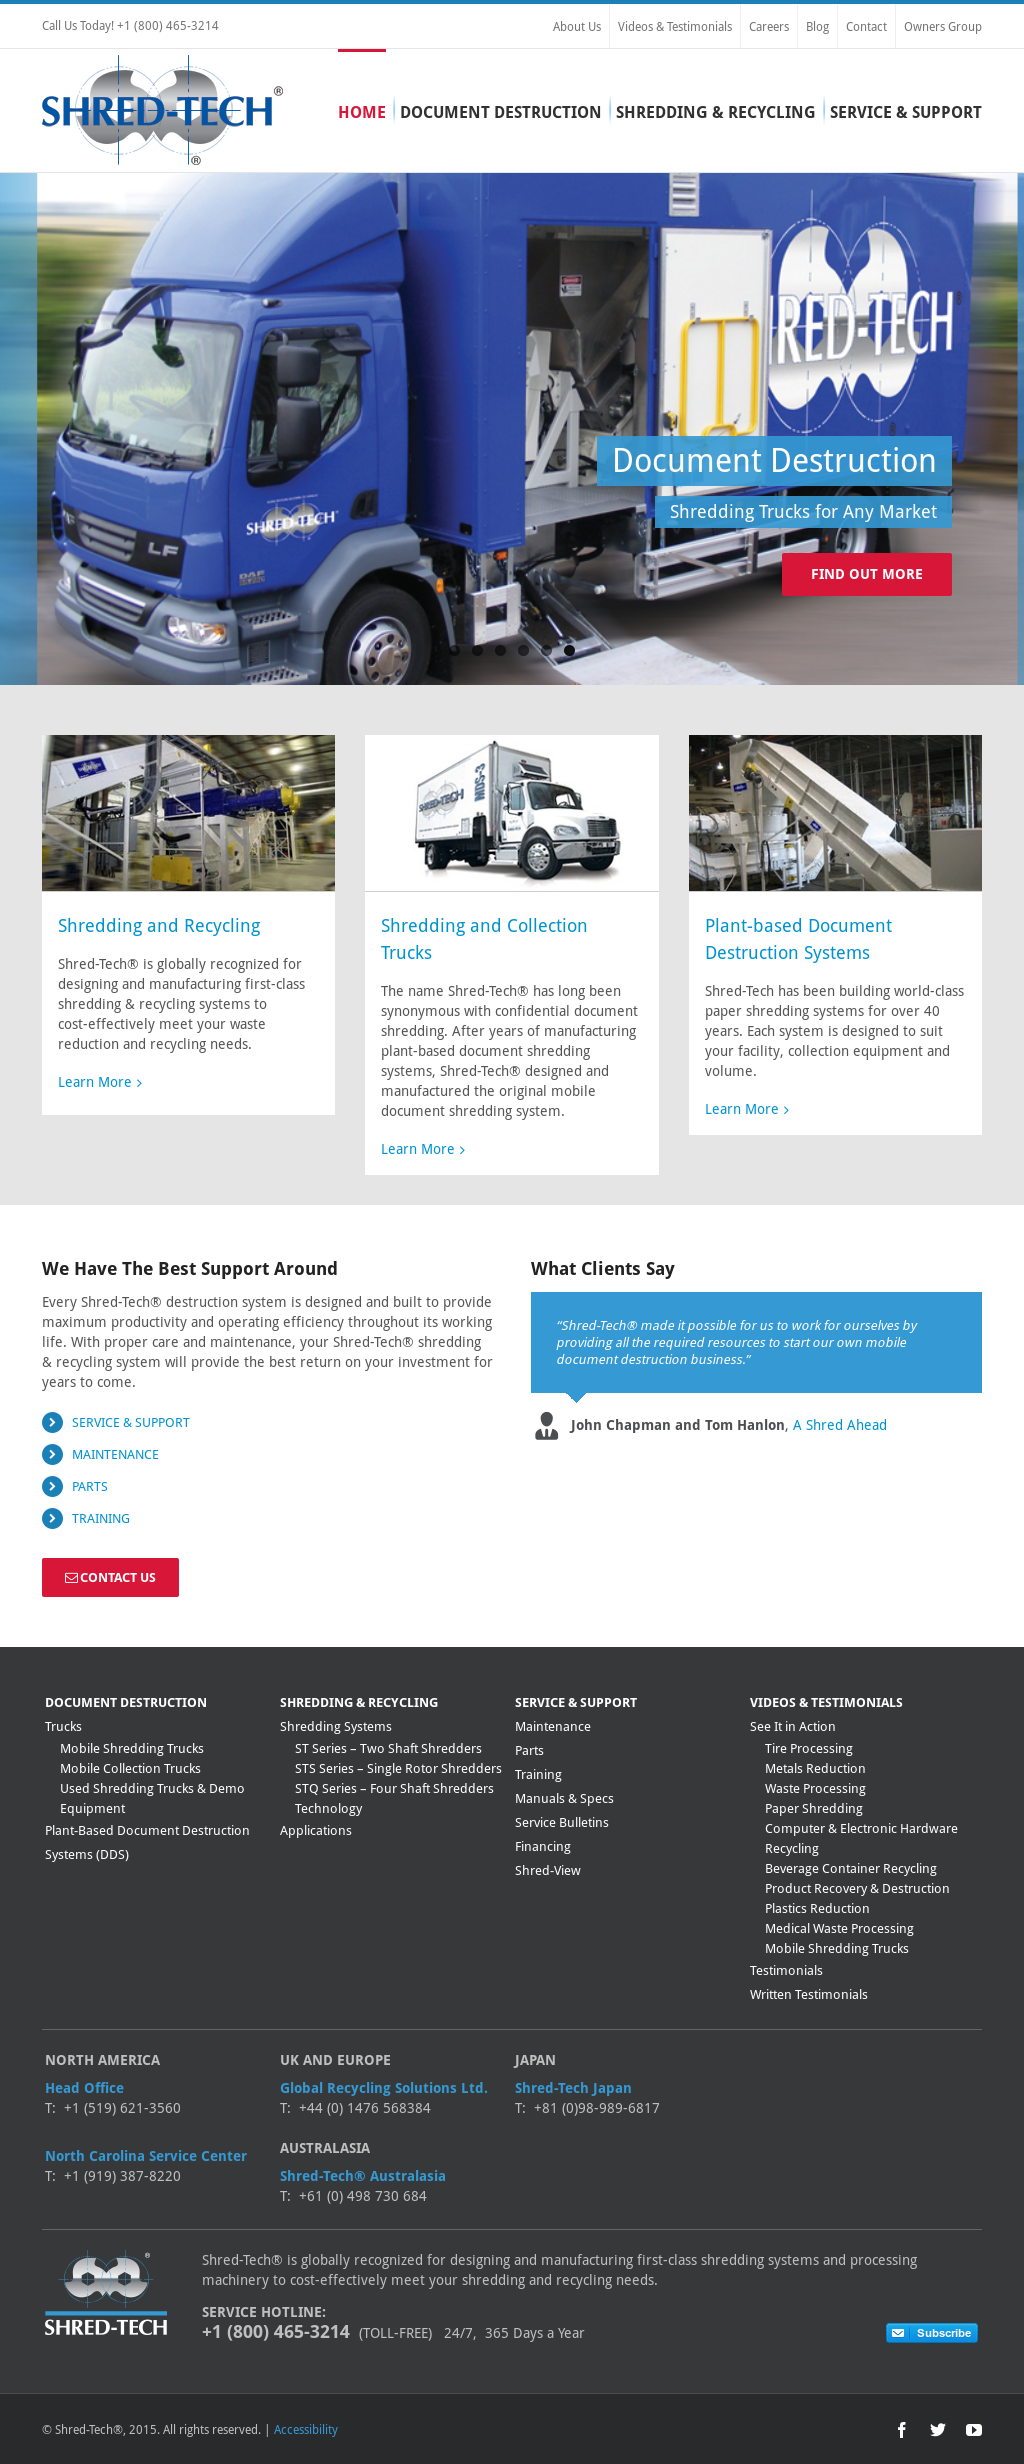 Shred-Tech Competitors, Revenue and Employees - Owler Company Profile